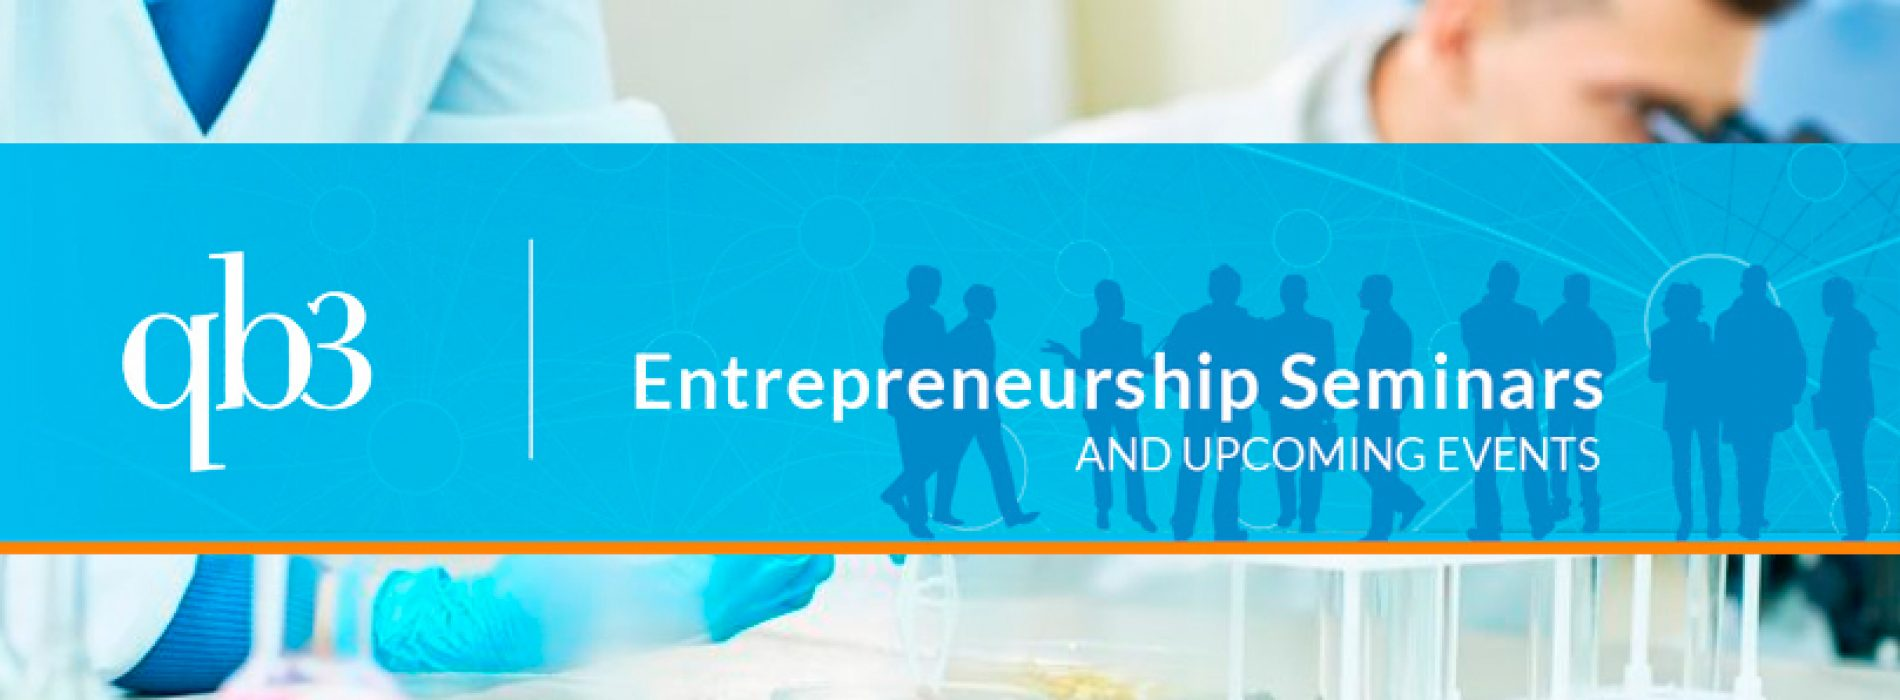 Immigration policy for entrepreneurs in life science, Oct  9 at UCSF